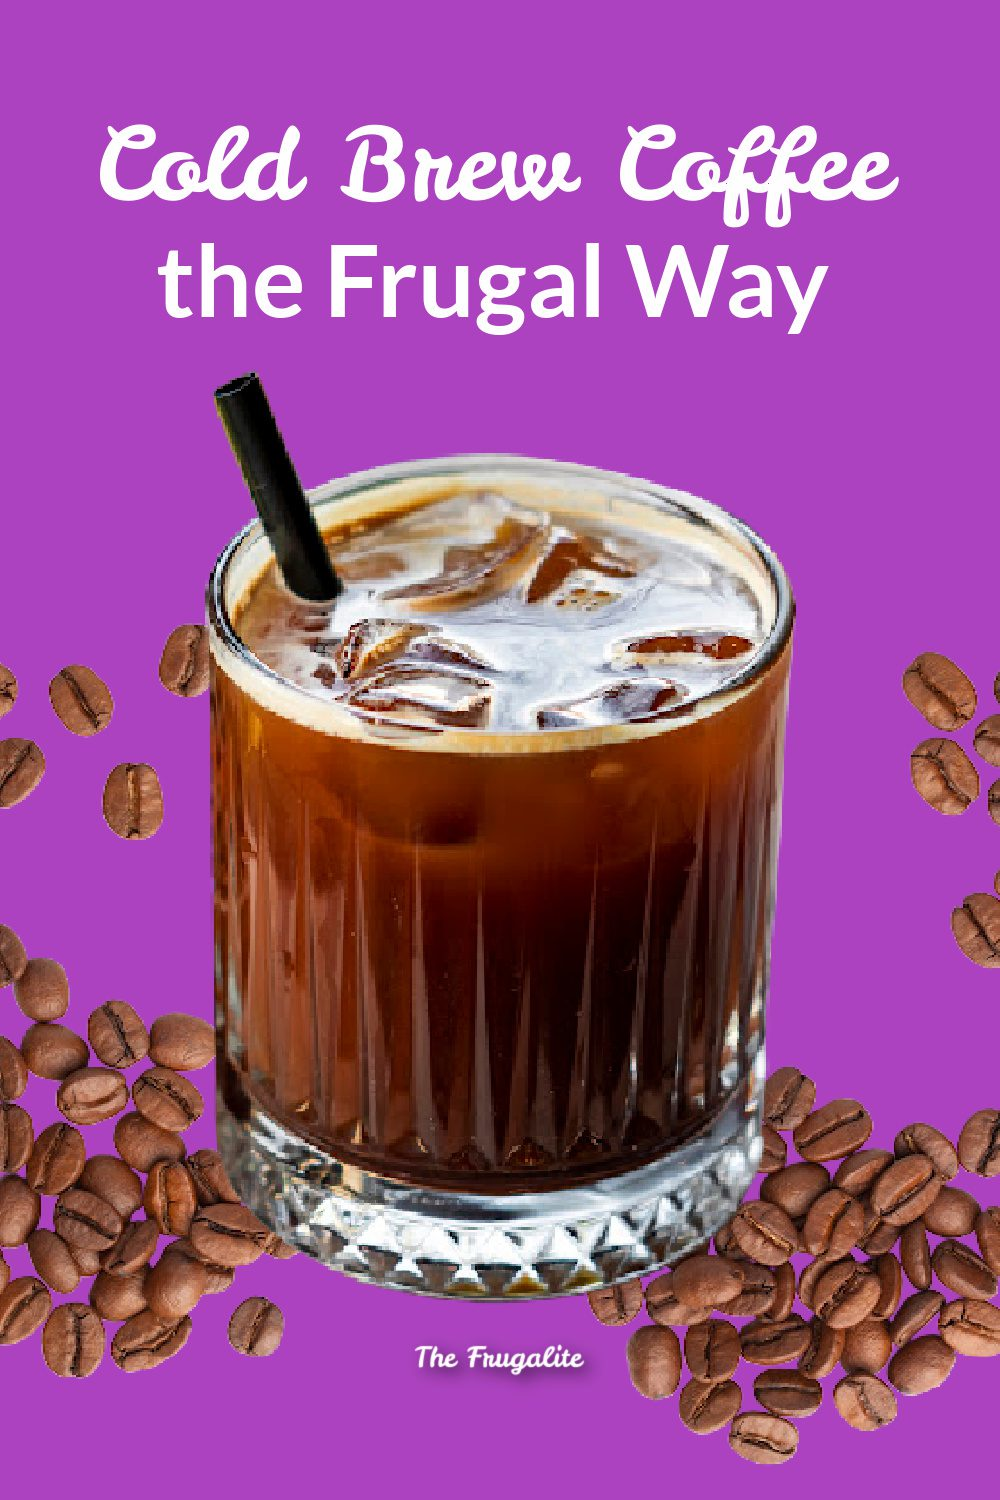 How to Cold Brew Coffee the Frugal Way